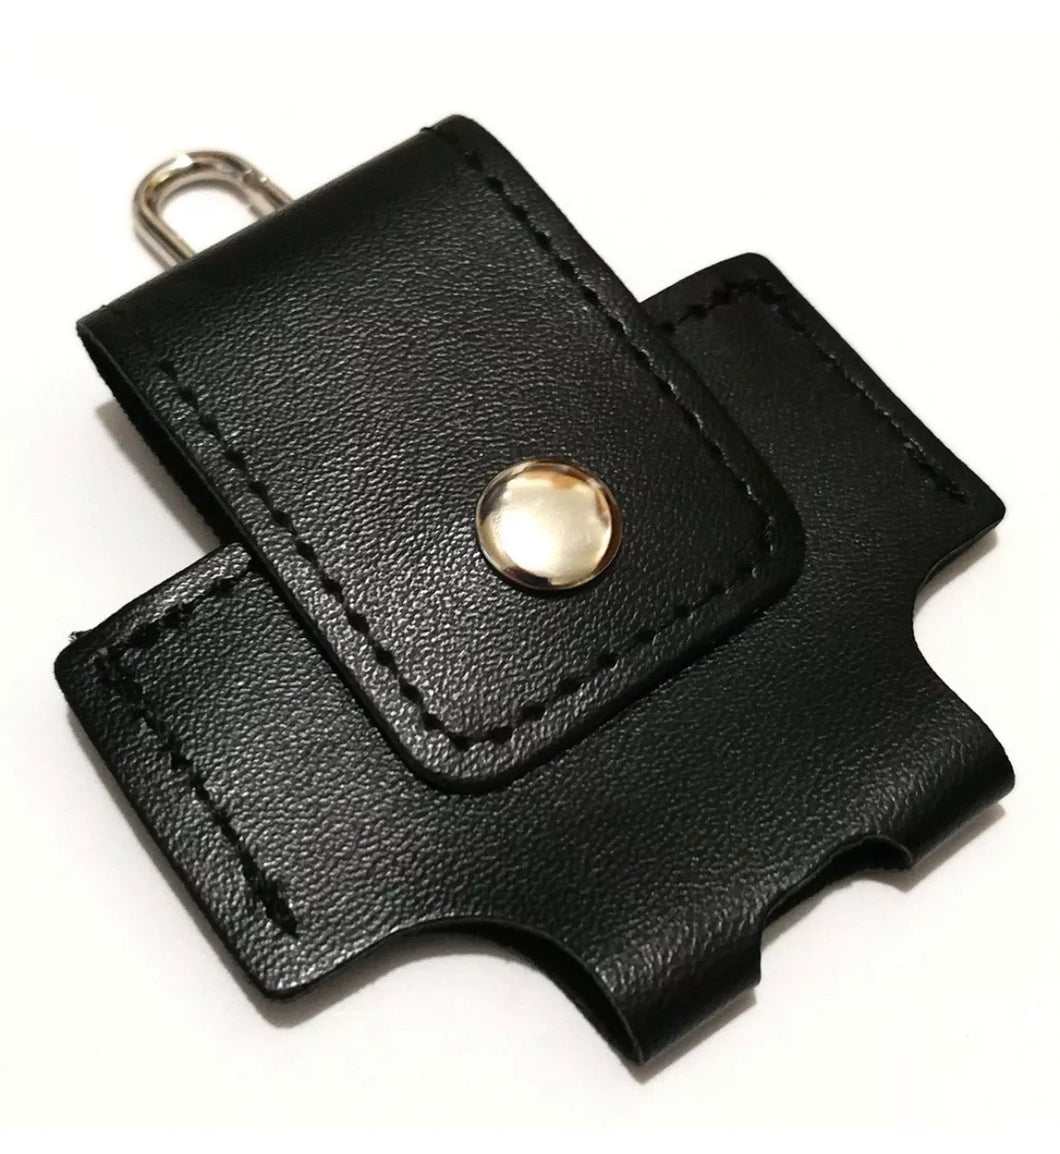 Leather Clip AirPod Case - 8 Options Available